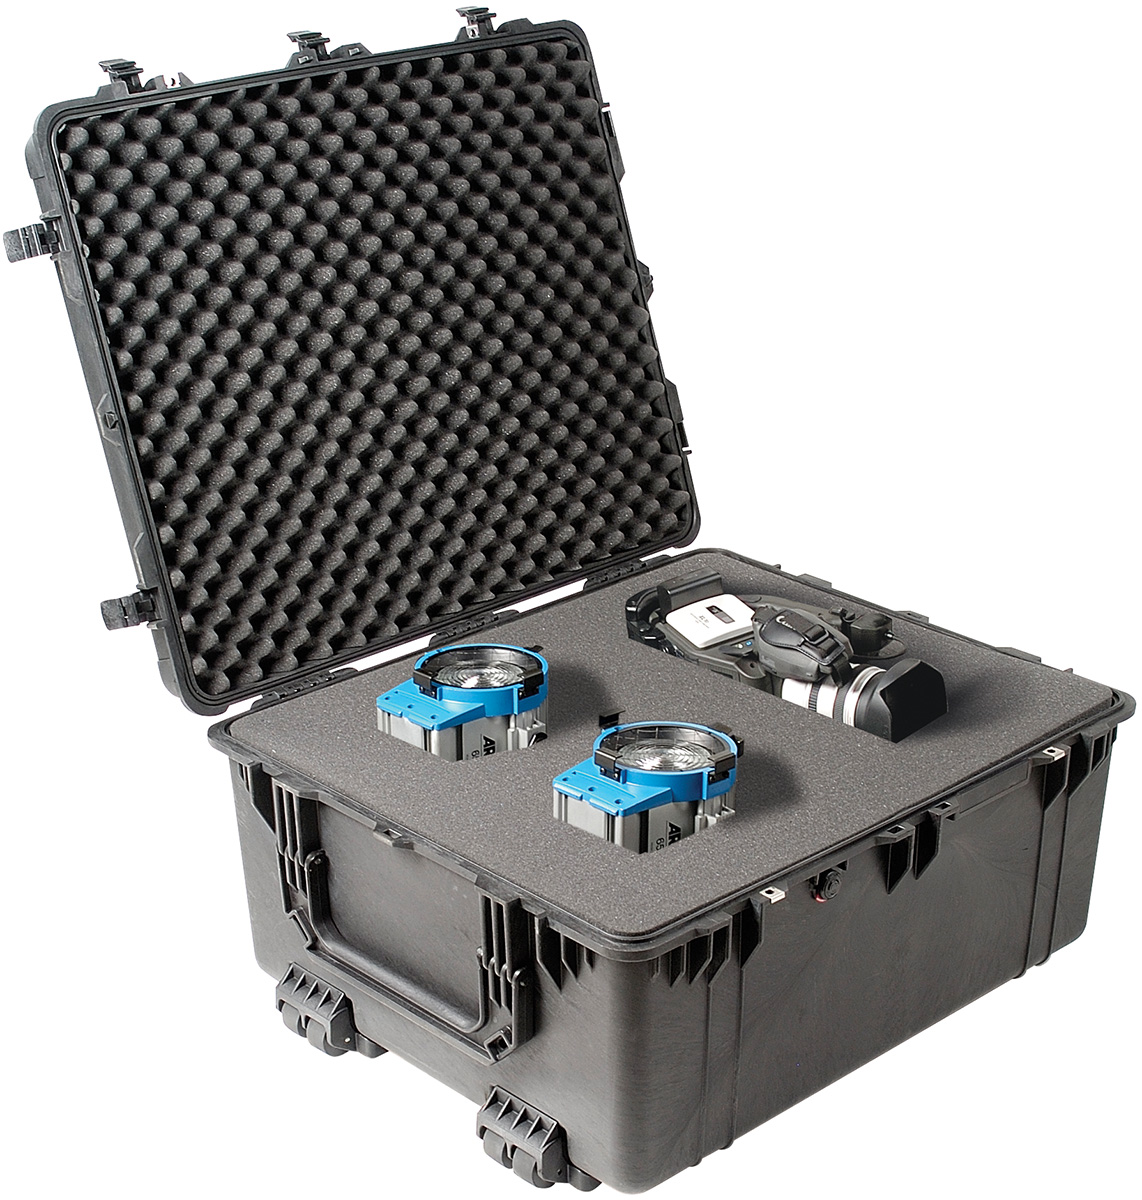 pelican 1690 rolling video film camera gear case